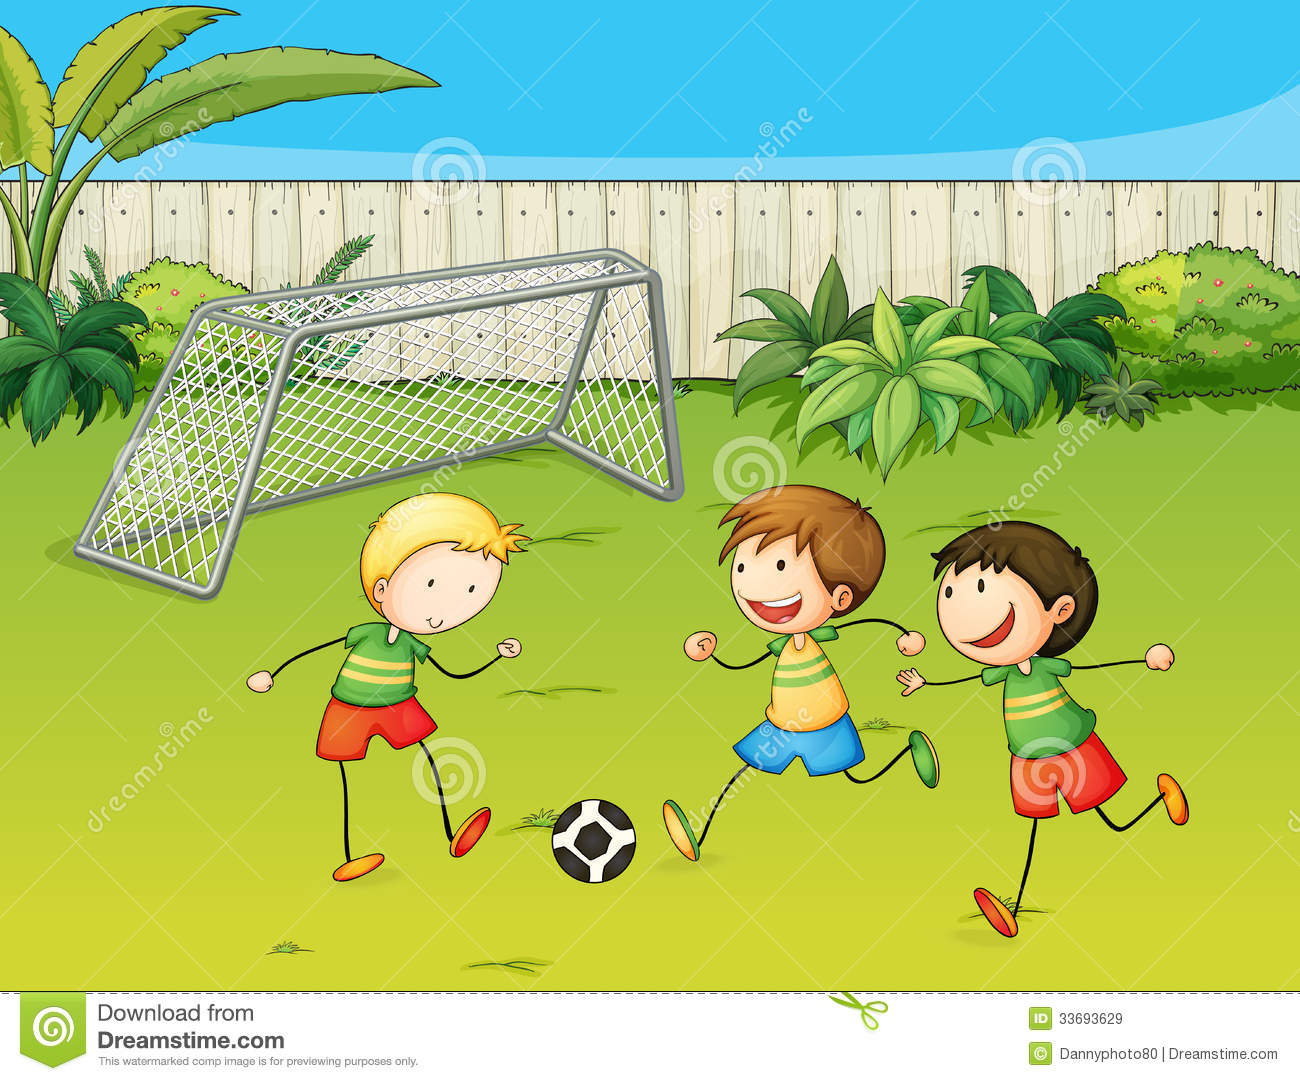 Kids Playing Football On Football Ground Stock Vector Illustration Of Plants Drawing 33693629